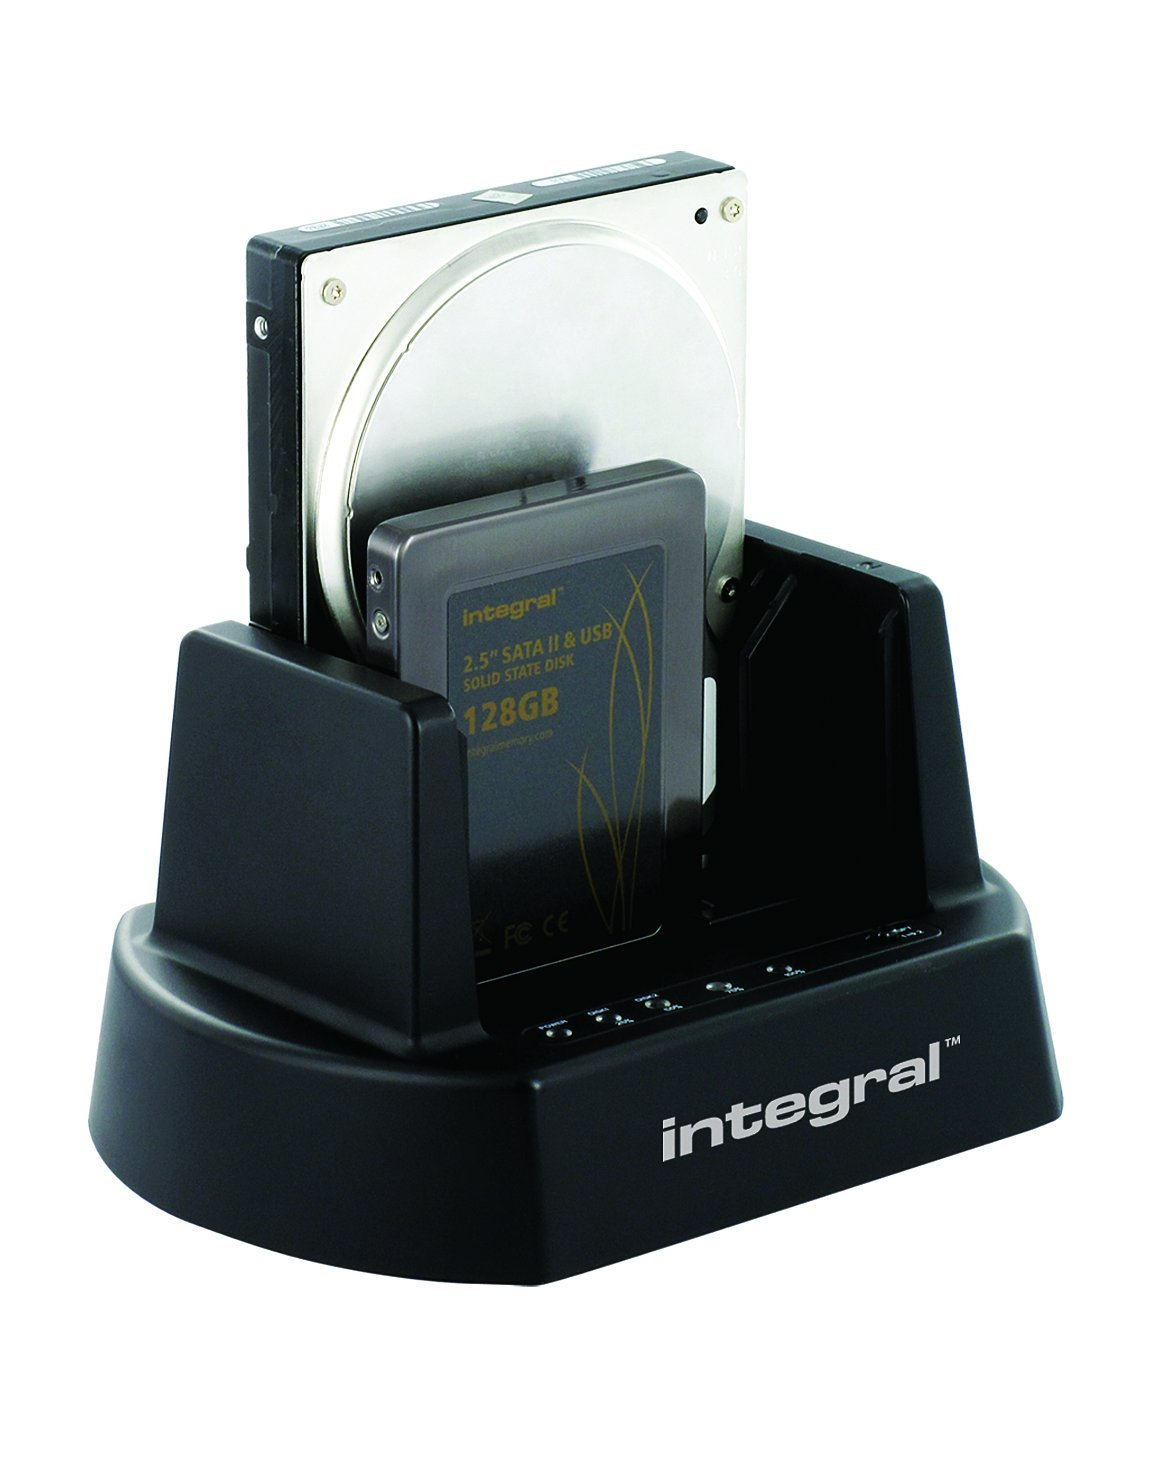 Integral Sata Hdd Copy Station Computers Accessories Sony Playstation 3 120gb Hdd500gb 2 Stick Controller